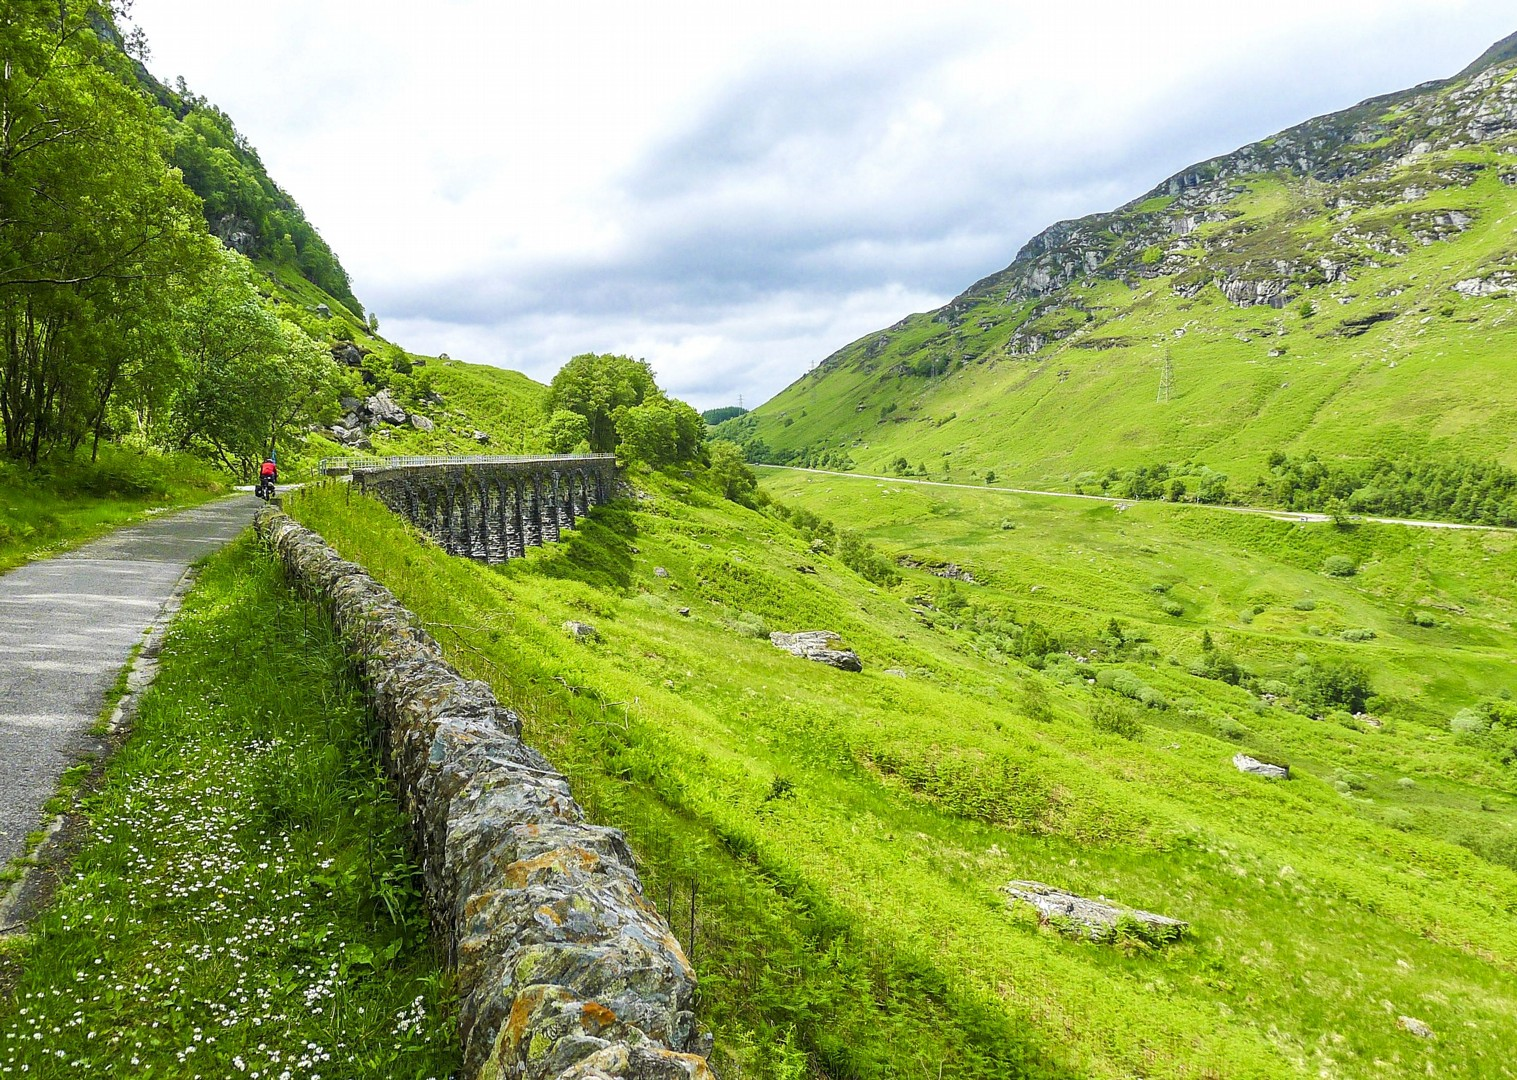 cycle-paths-uk-scotland-lochs-and-glens-countryside-tour-bike.jpg - UK - Scotland - Lochs and Glens - Self-Guided Leisure Cycling Holiday - Leisure Cycling